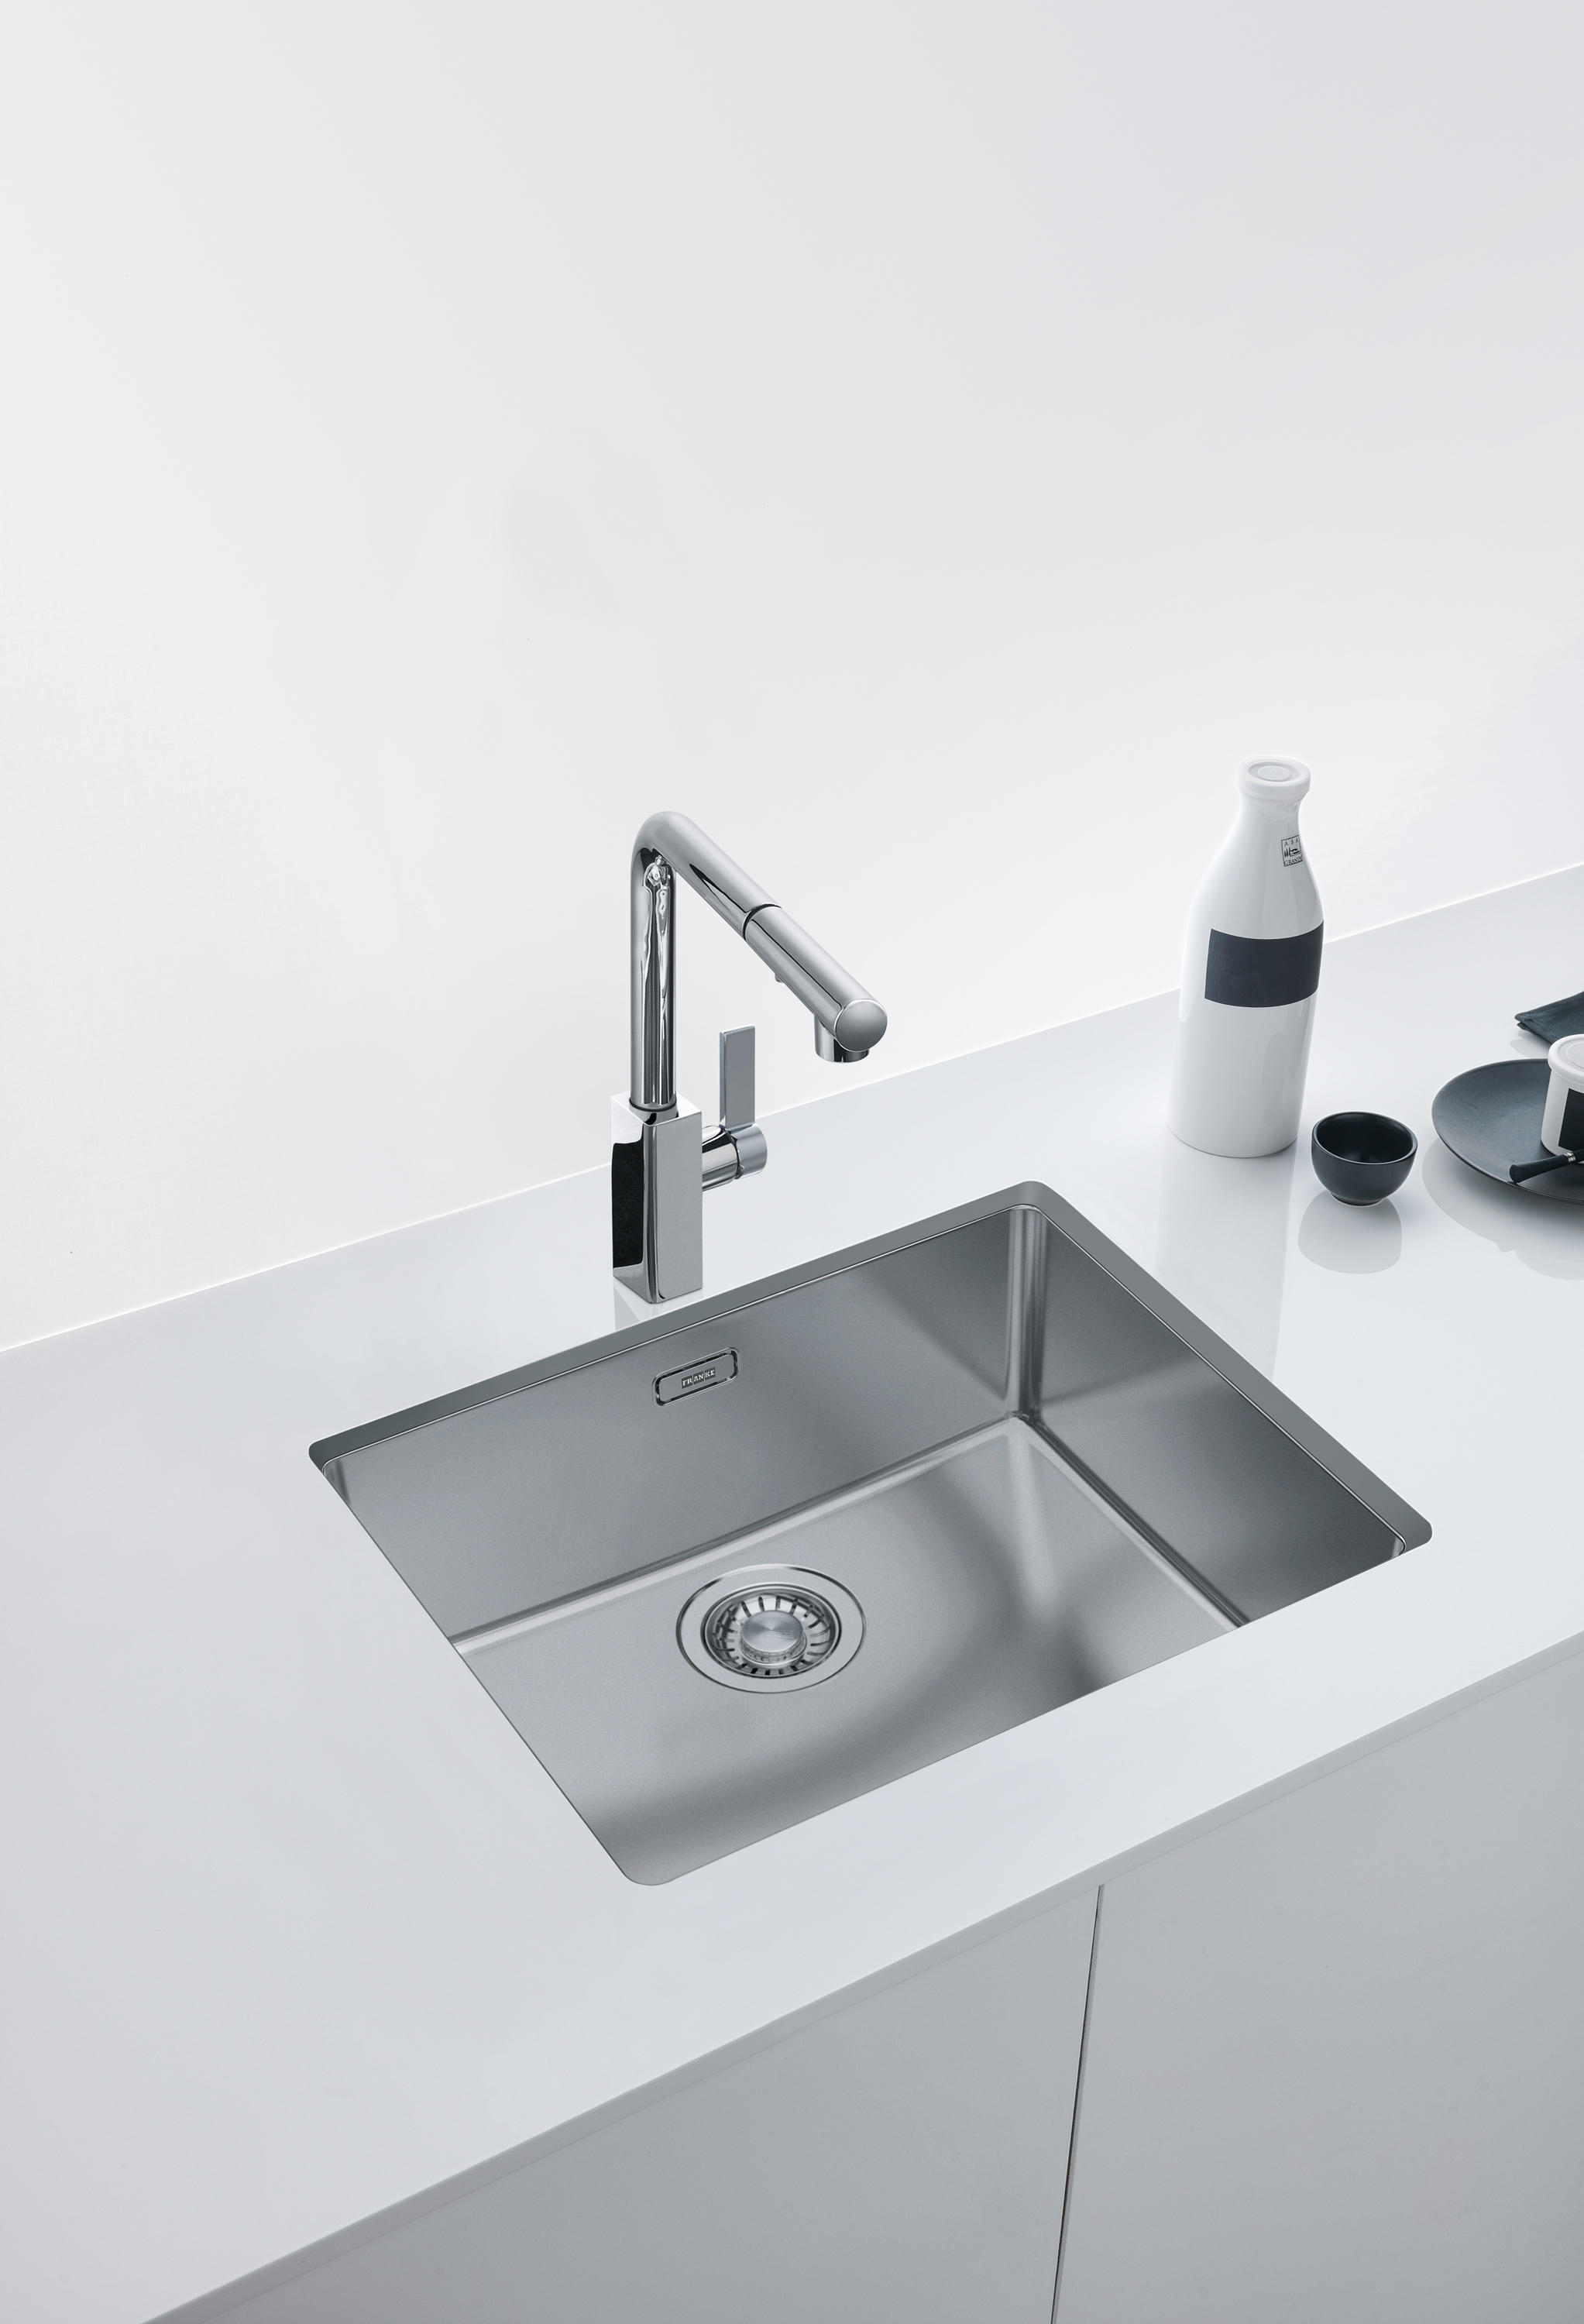 Franke Lavelli Inox Maris Sink Mrx 110 34 Stainless Steel Kitchen Sinks From Franke